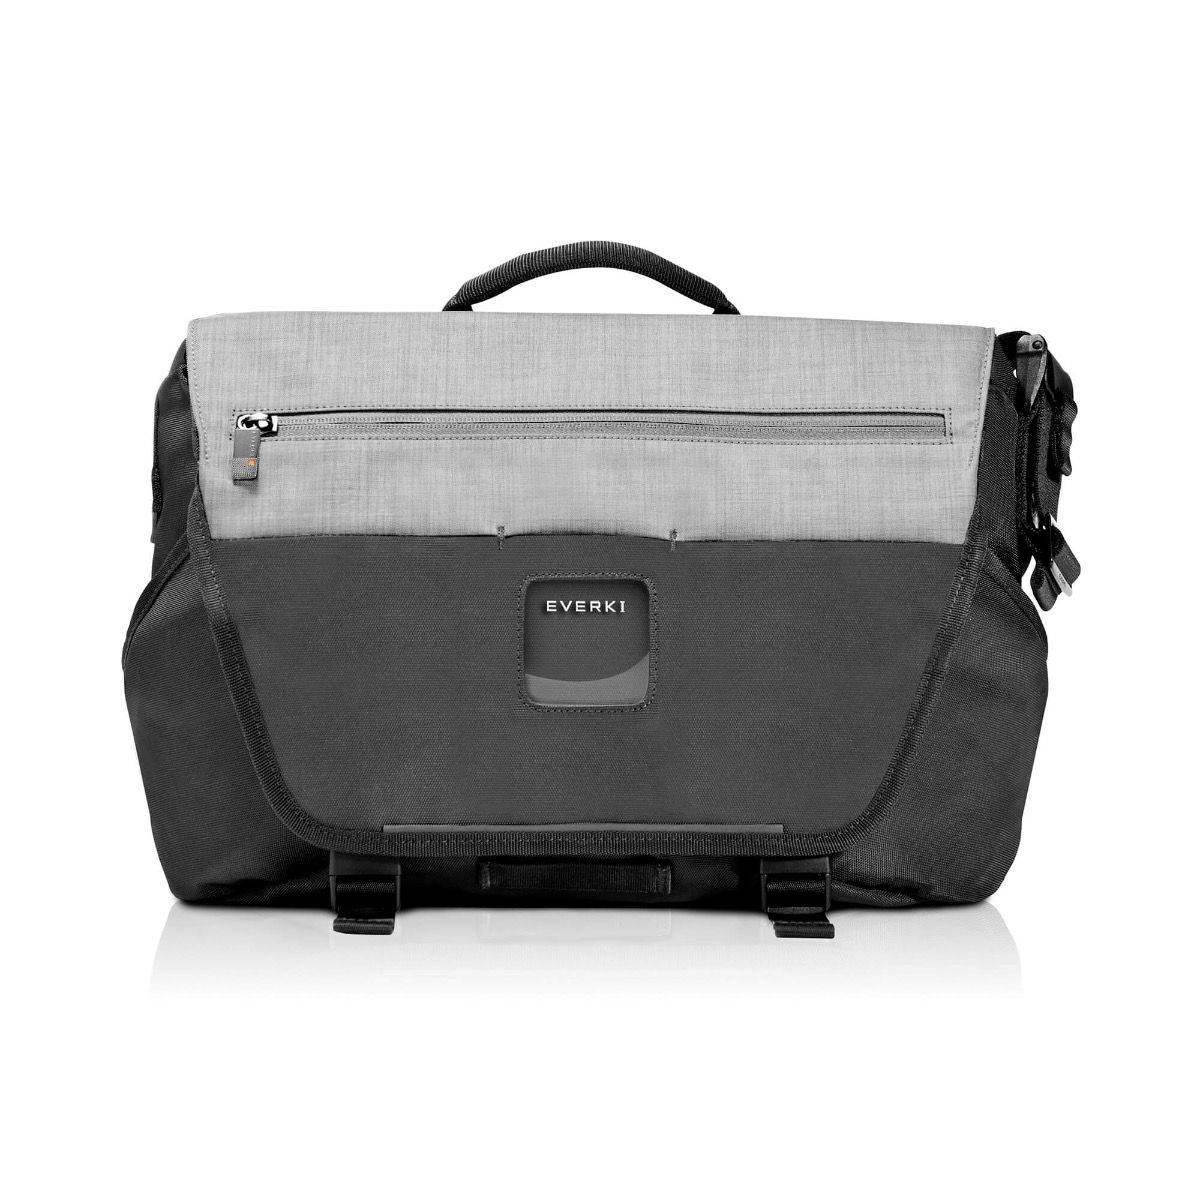 EVERKI ContemPRO 14 Inch Black Laptop Bike Messenger